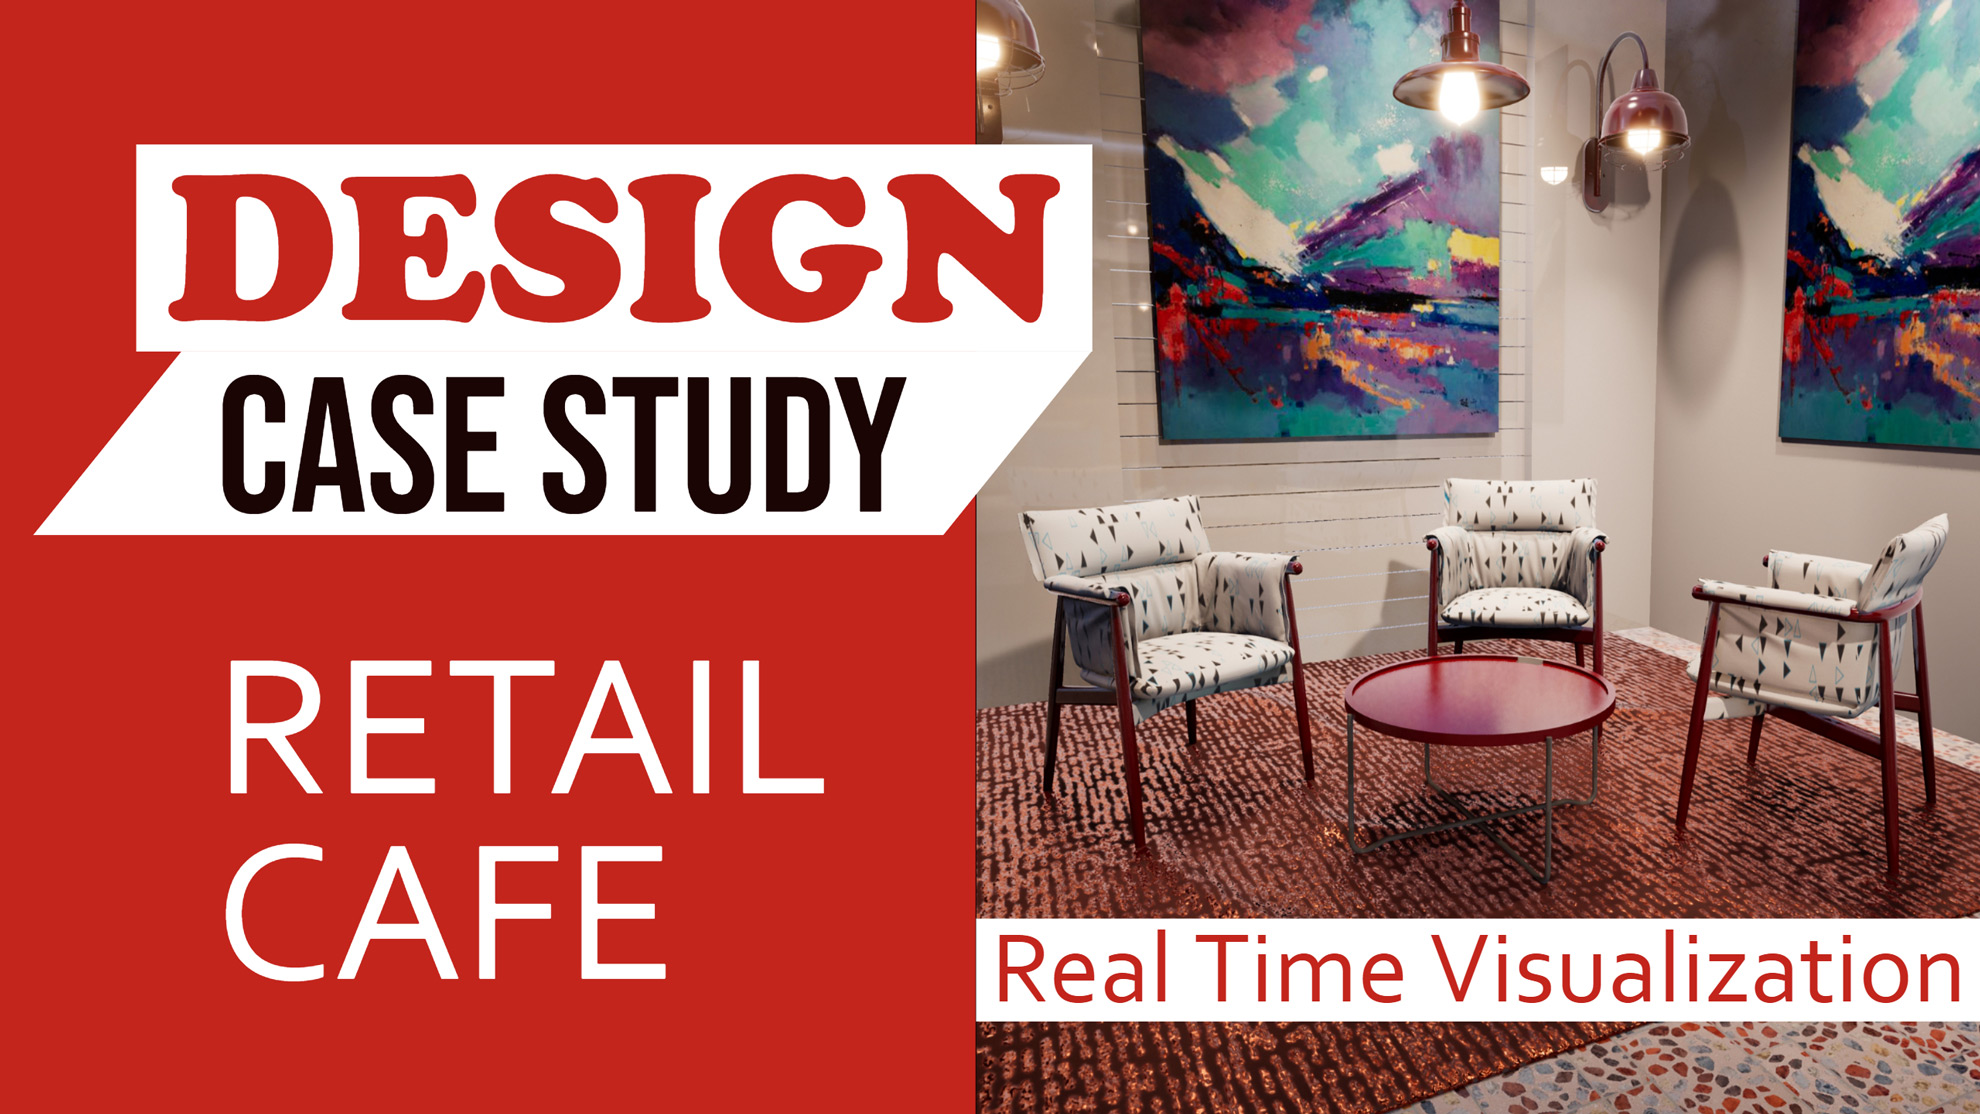 Design-Case-Study-Example-Cafe-Retail-Space